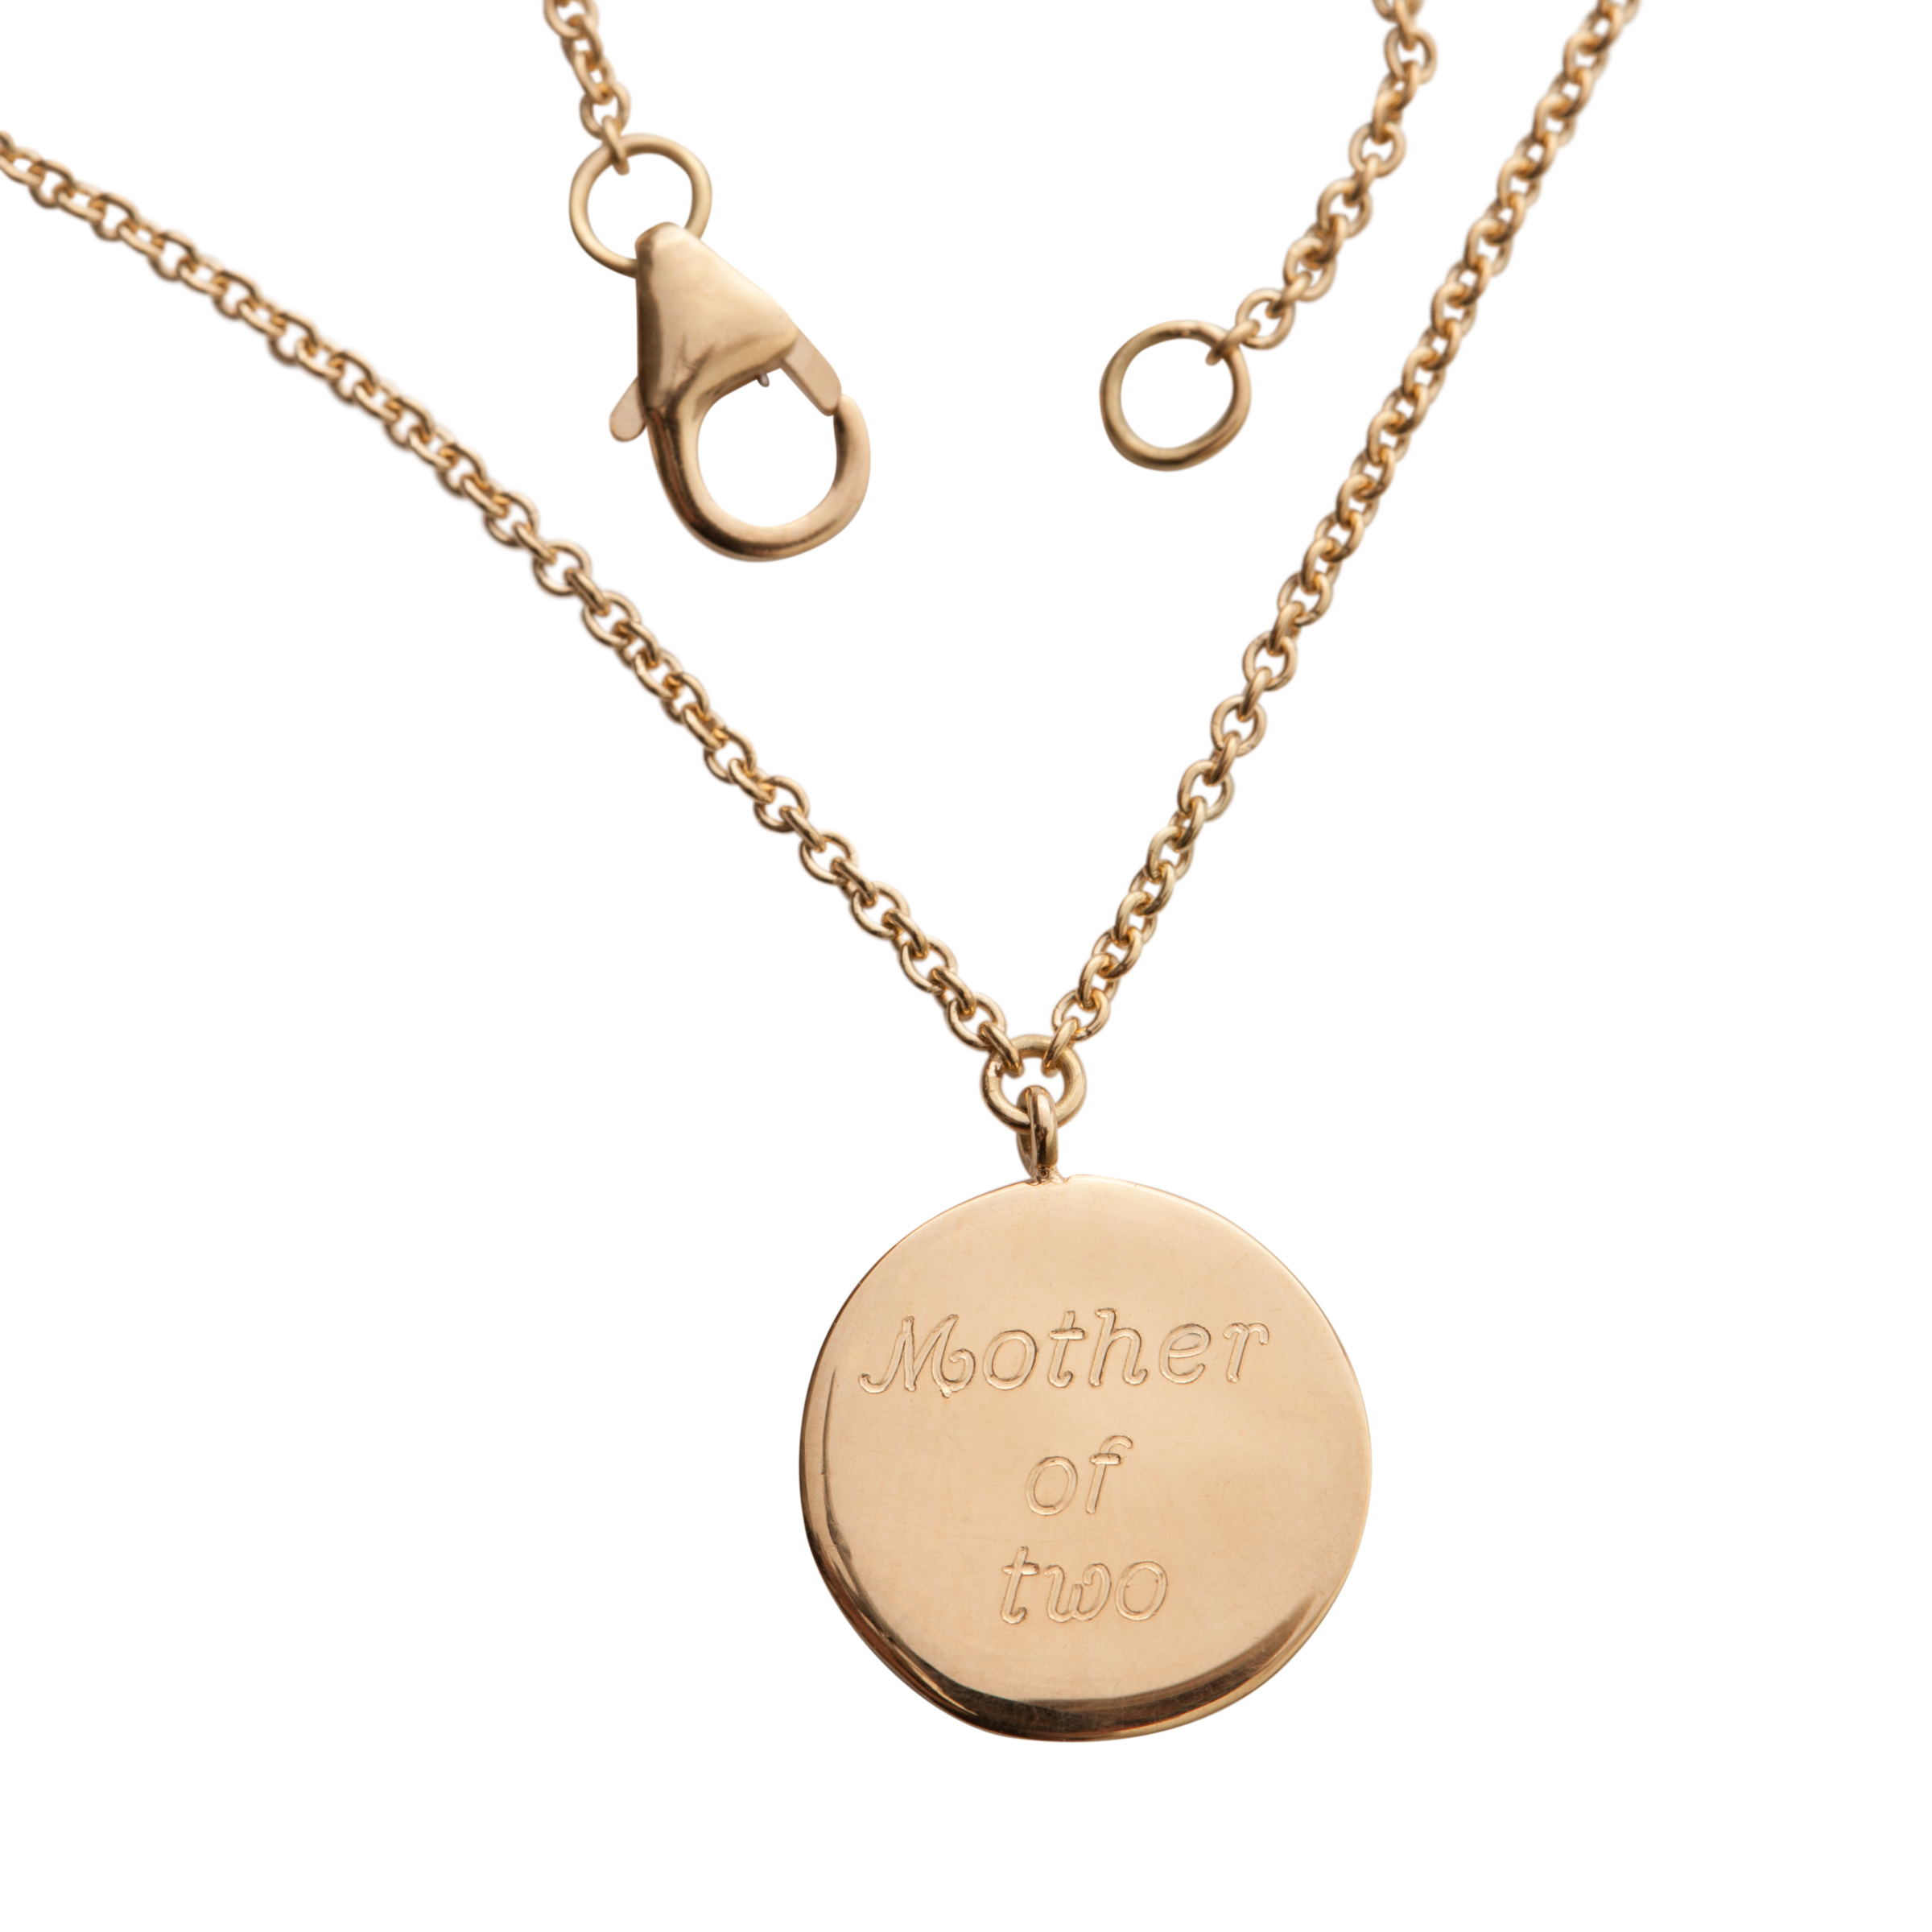 THE MOTHER OF NECKLACE   12.000 NOK   18 kt white gold. Engraved by hand